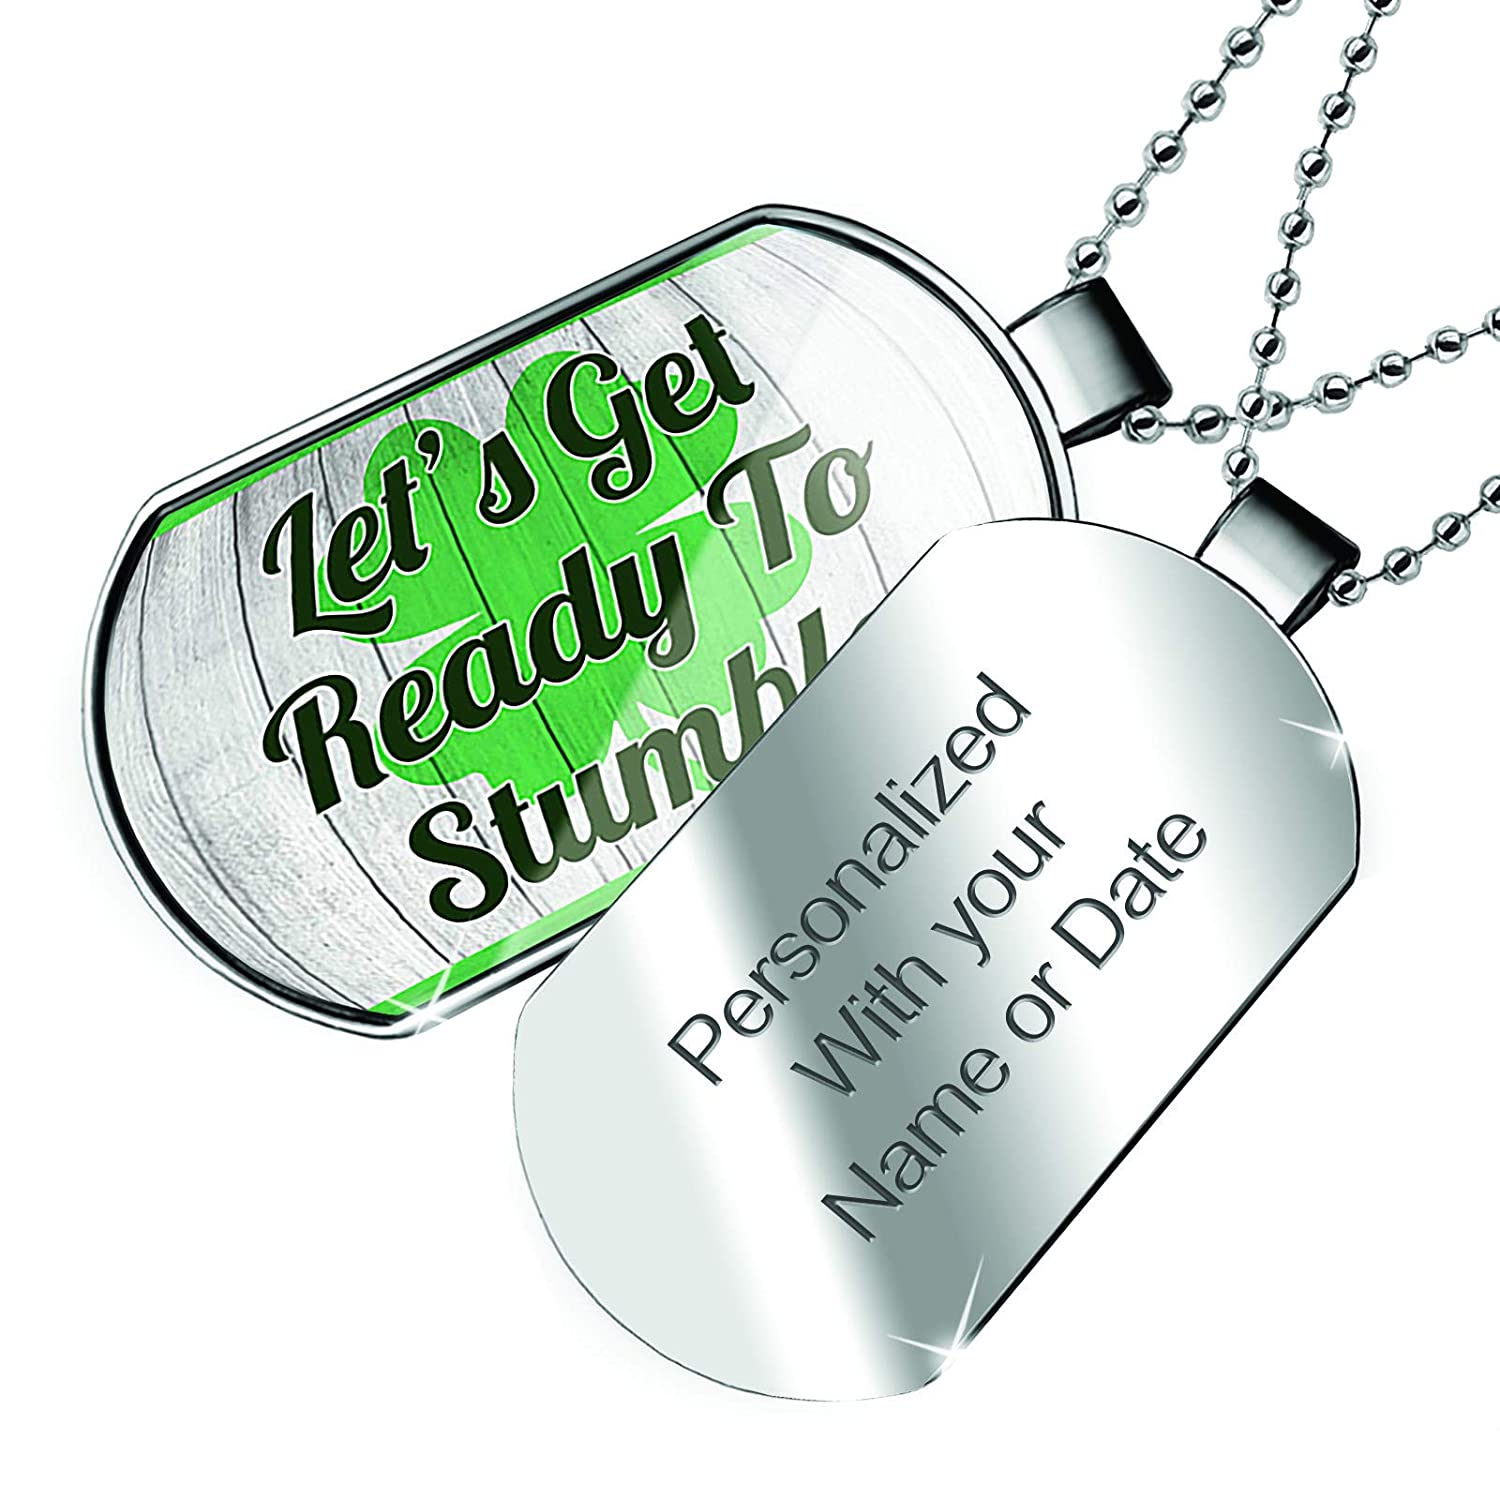 Patricks Day Shamrock on Wood Dogtag Necklace NEONBLOND Personalized Name Engraved Lets Get Ready to Stumble St